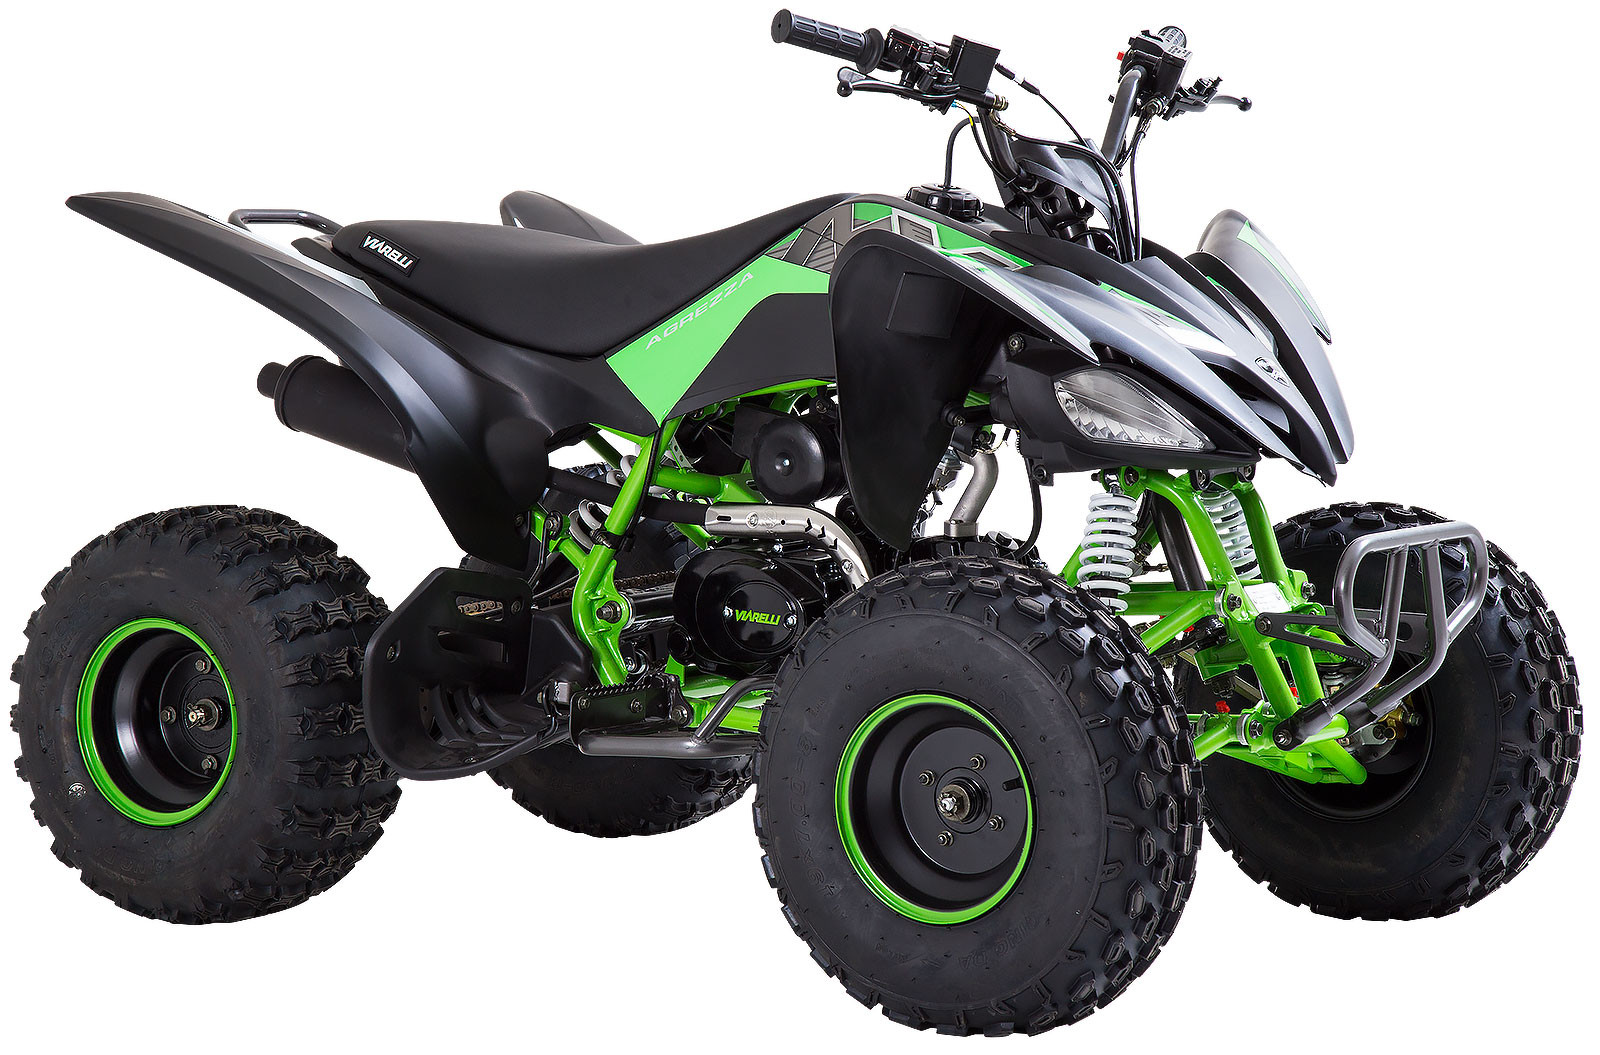 Viarelli Agrezza ATV 125cc